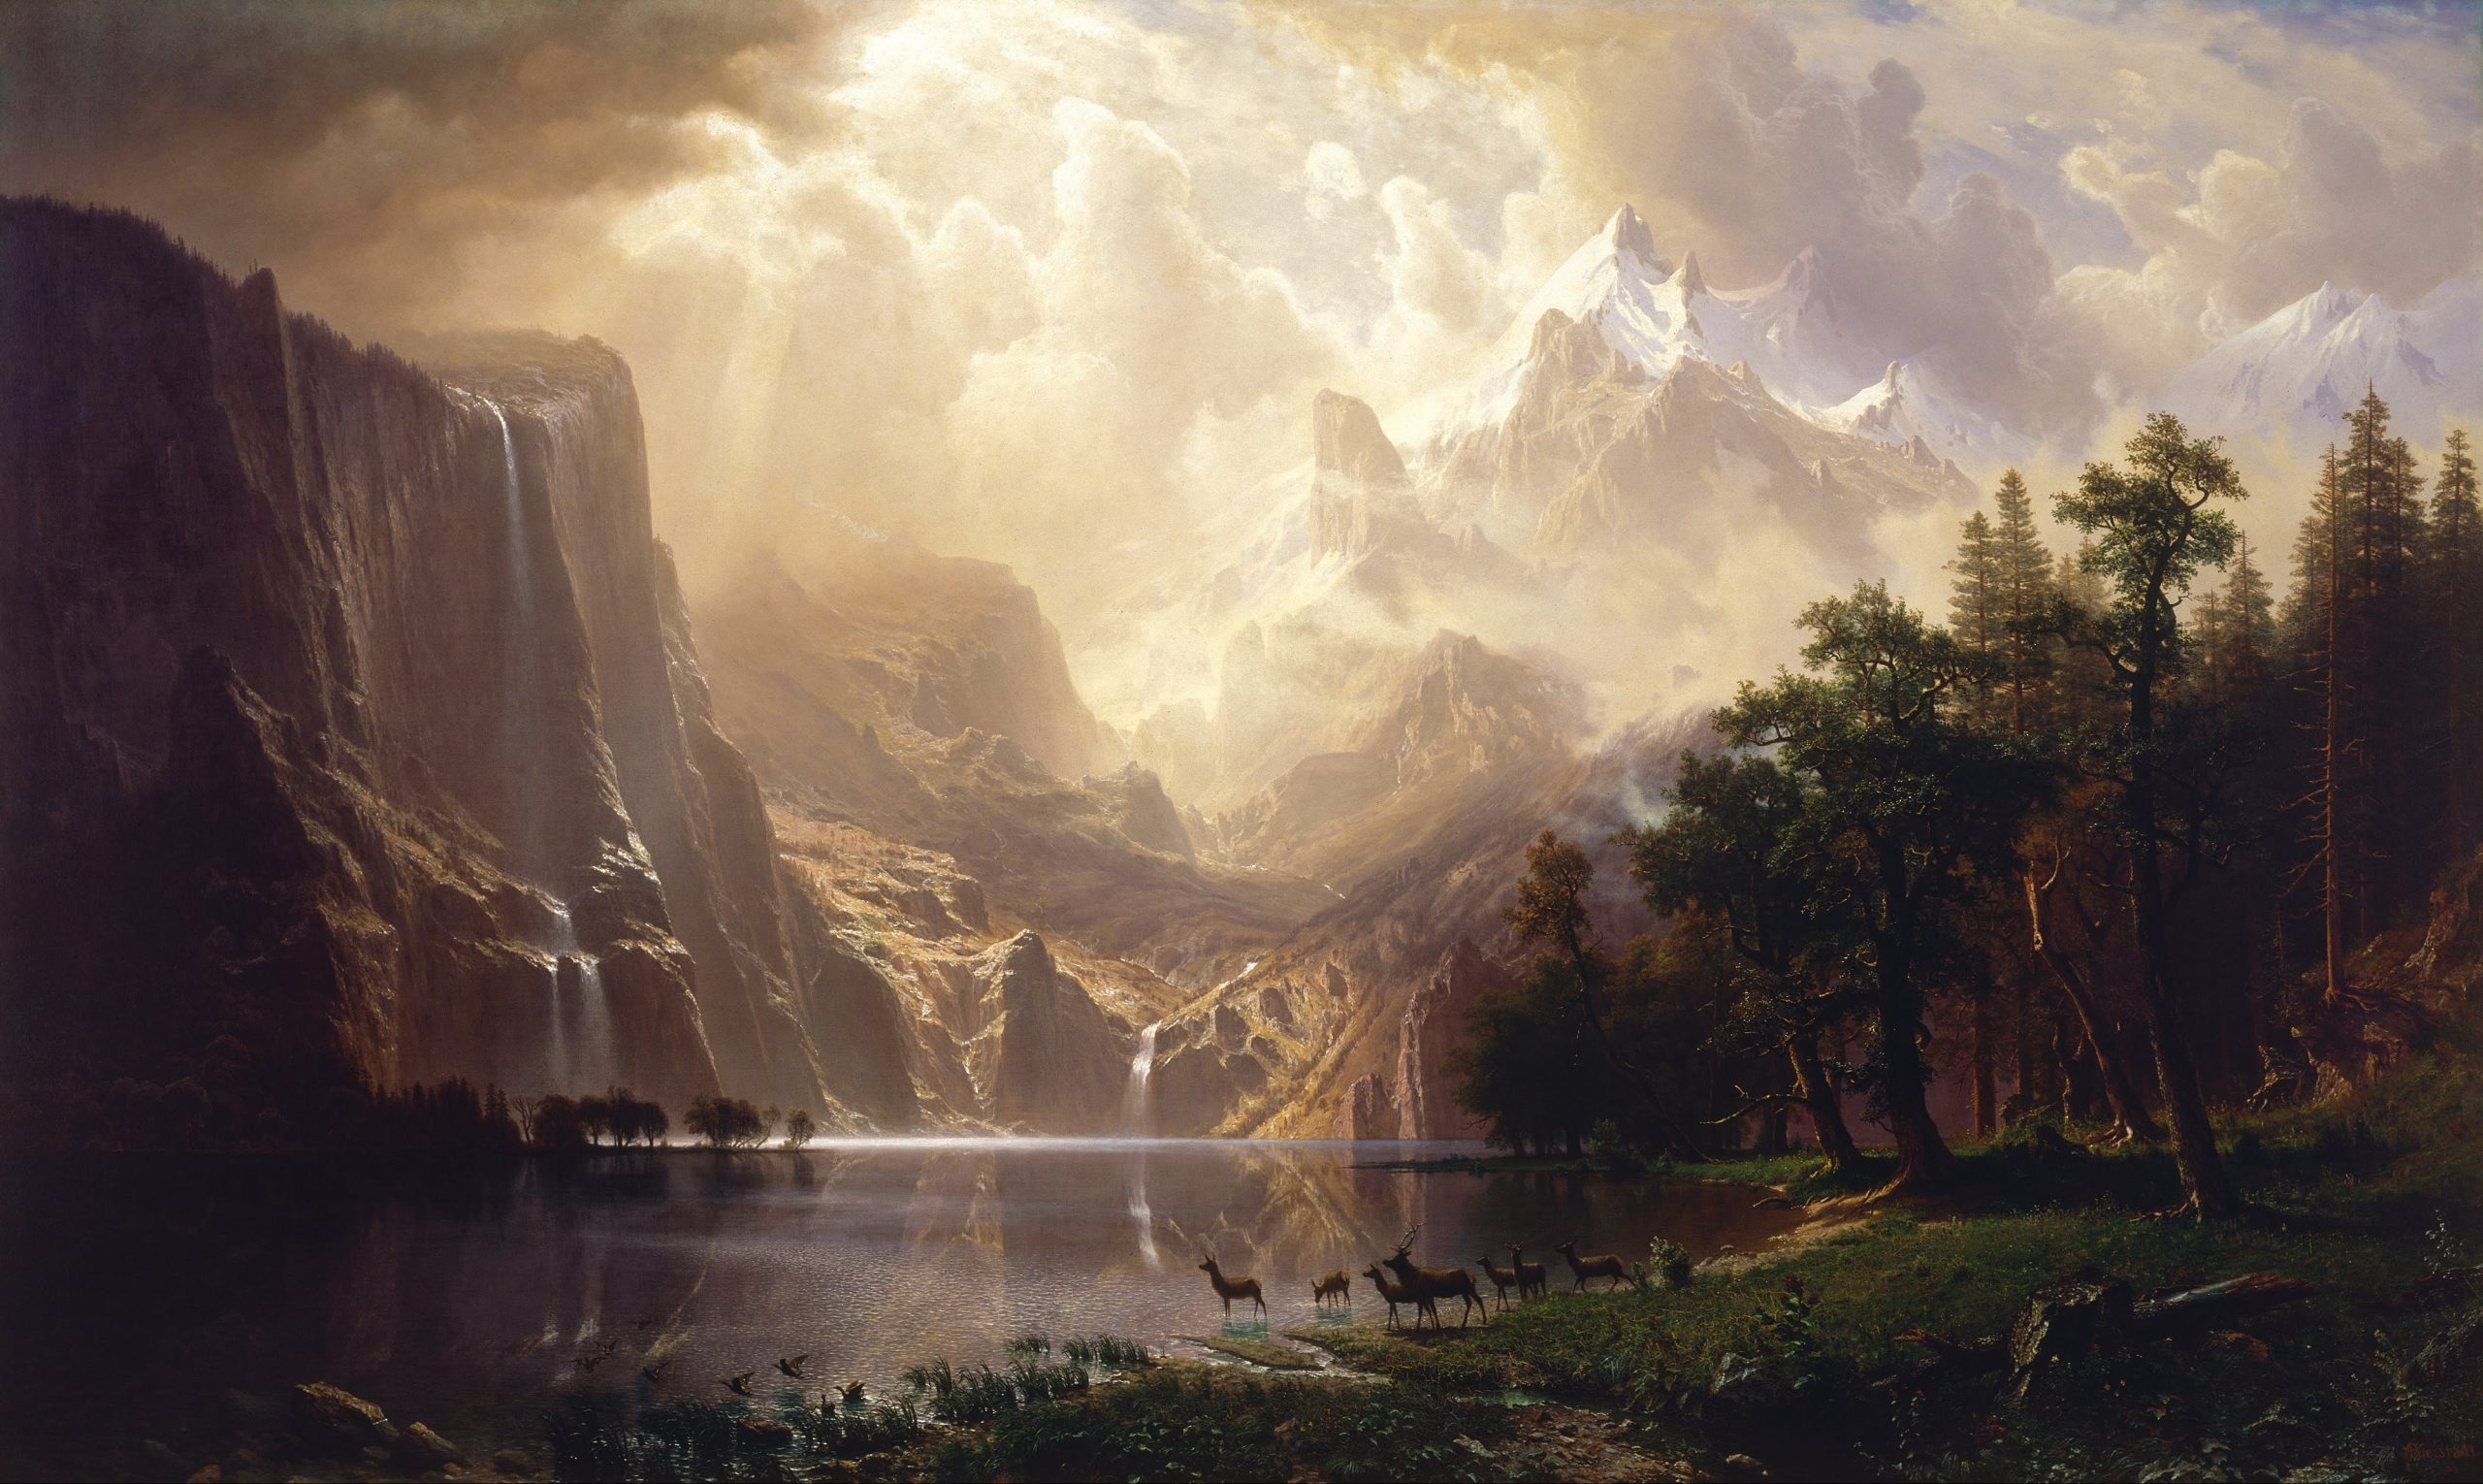 An oil painting of the mountains of California, specifically the Sierra Nevada